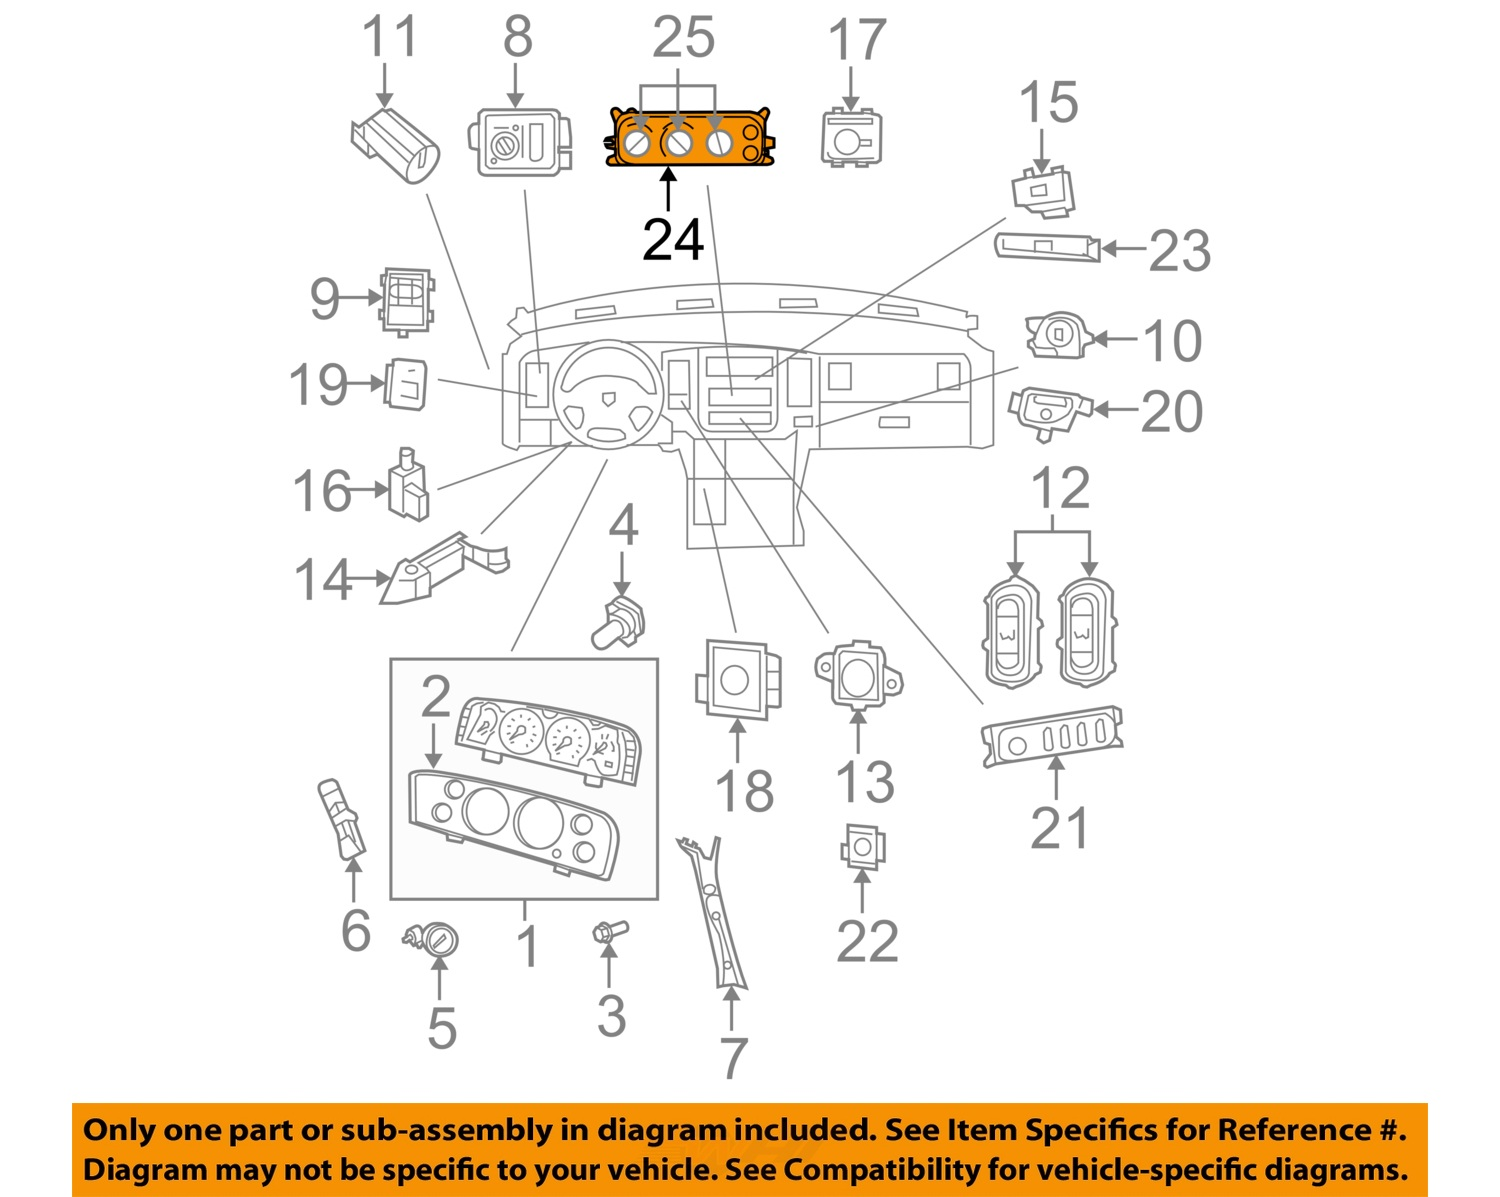 2003 Dodge Ram 1500 Dash Wiring Diagrams Just Diagram Radio 2001 Trusted 2004 Stereo